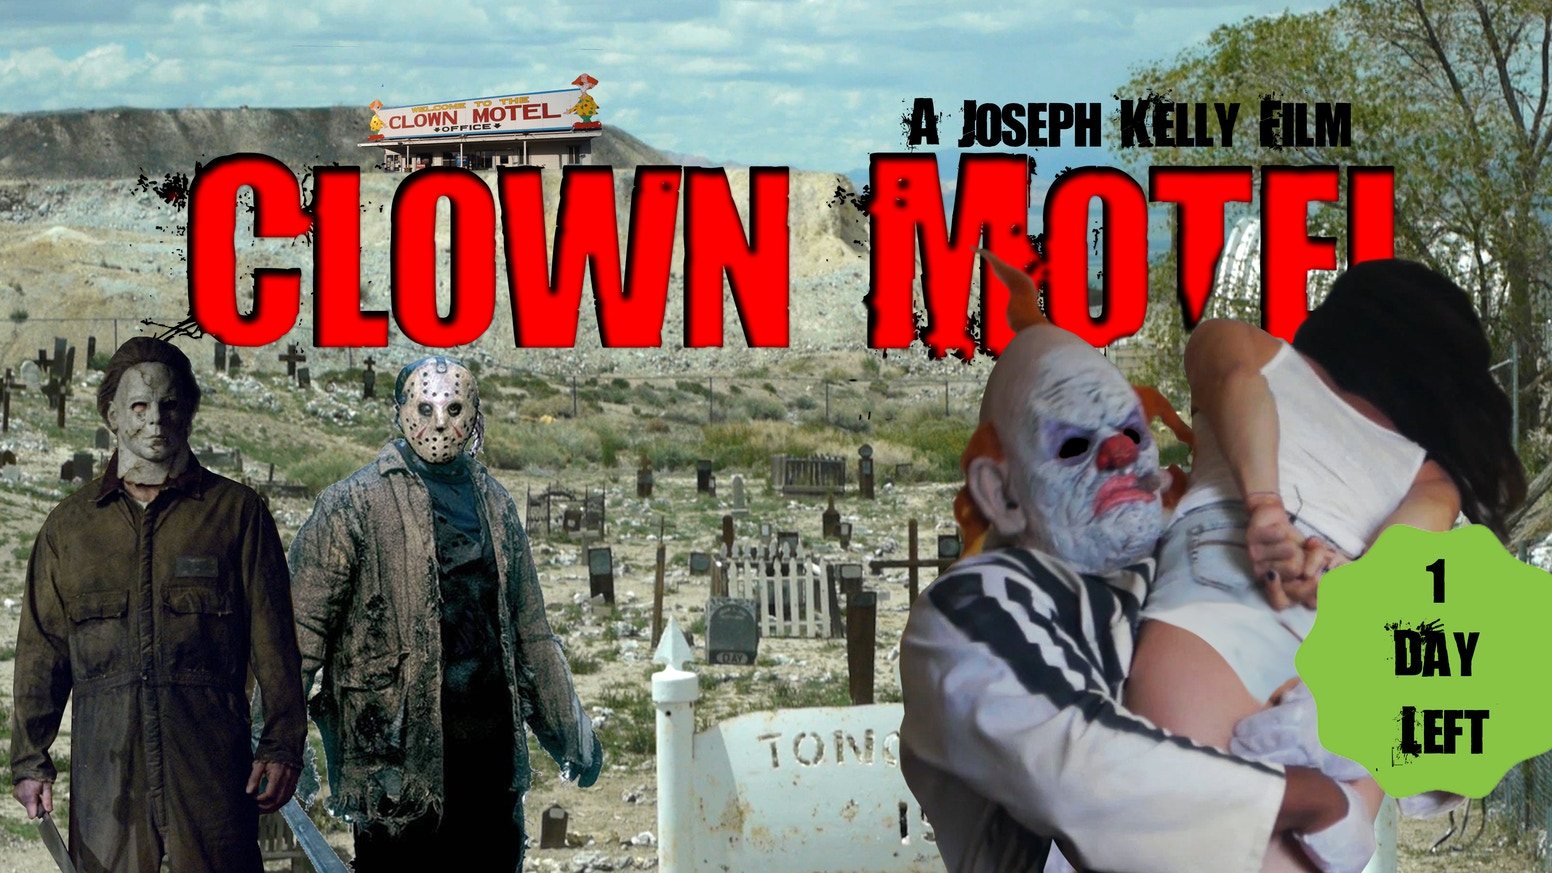 The First Jason Voorhees (Ari Lehman) and the First Michael Myers (Tony Moran) join forces at the notoriously haunted Clown Motel!